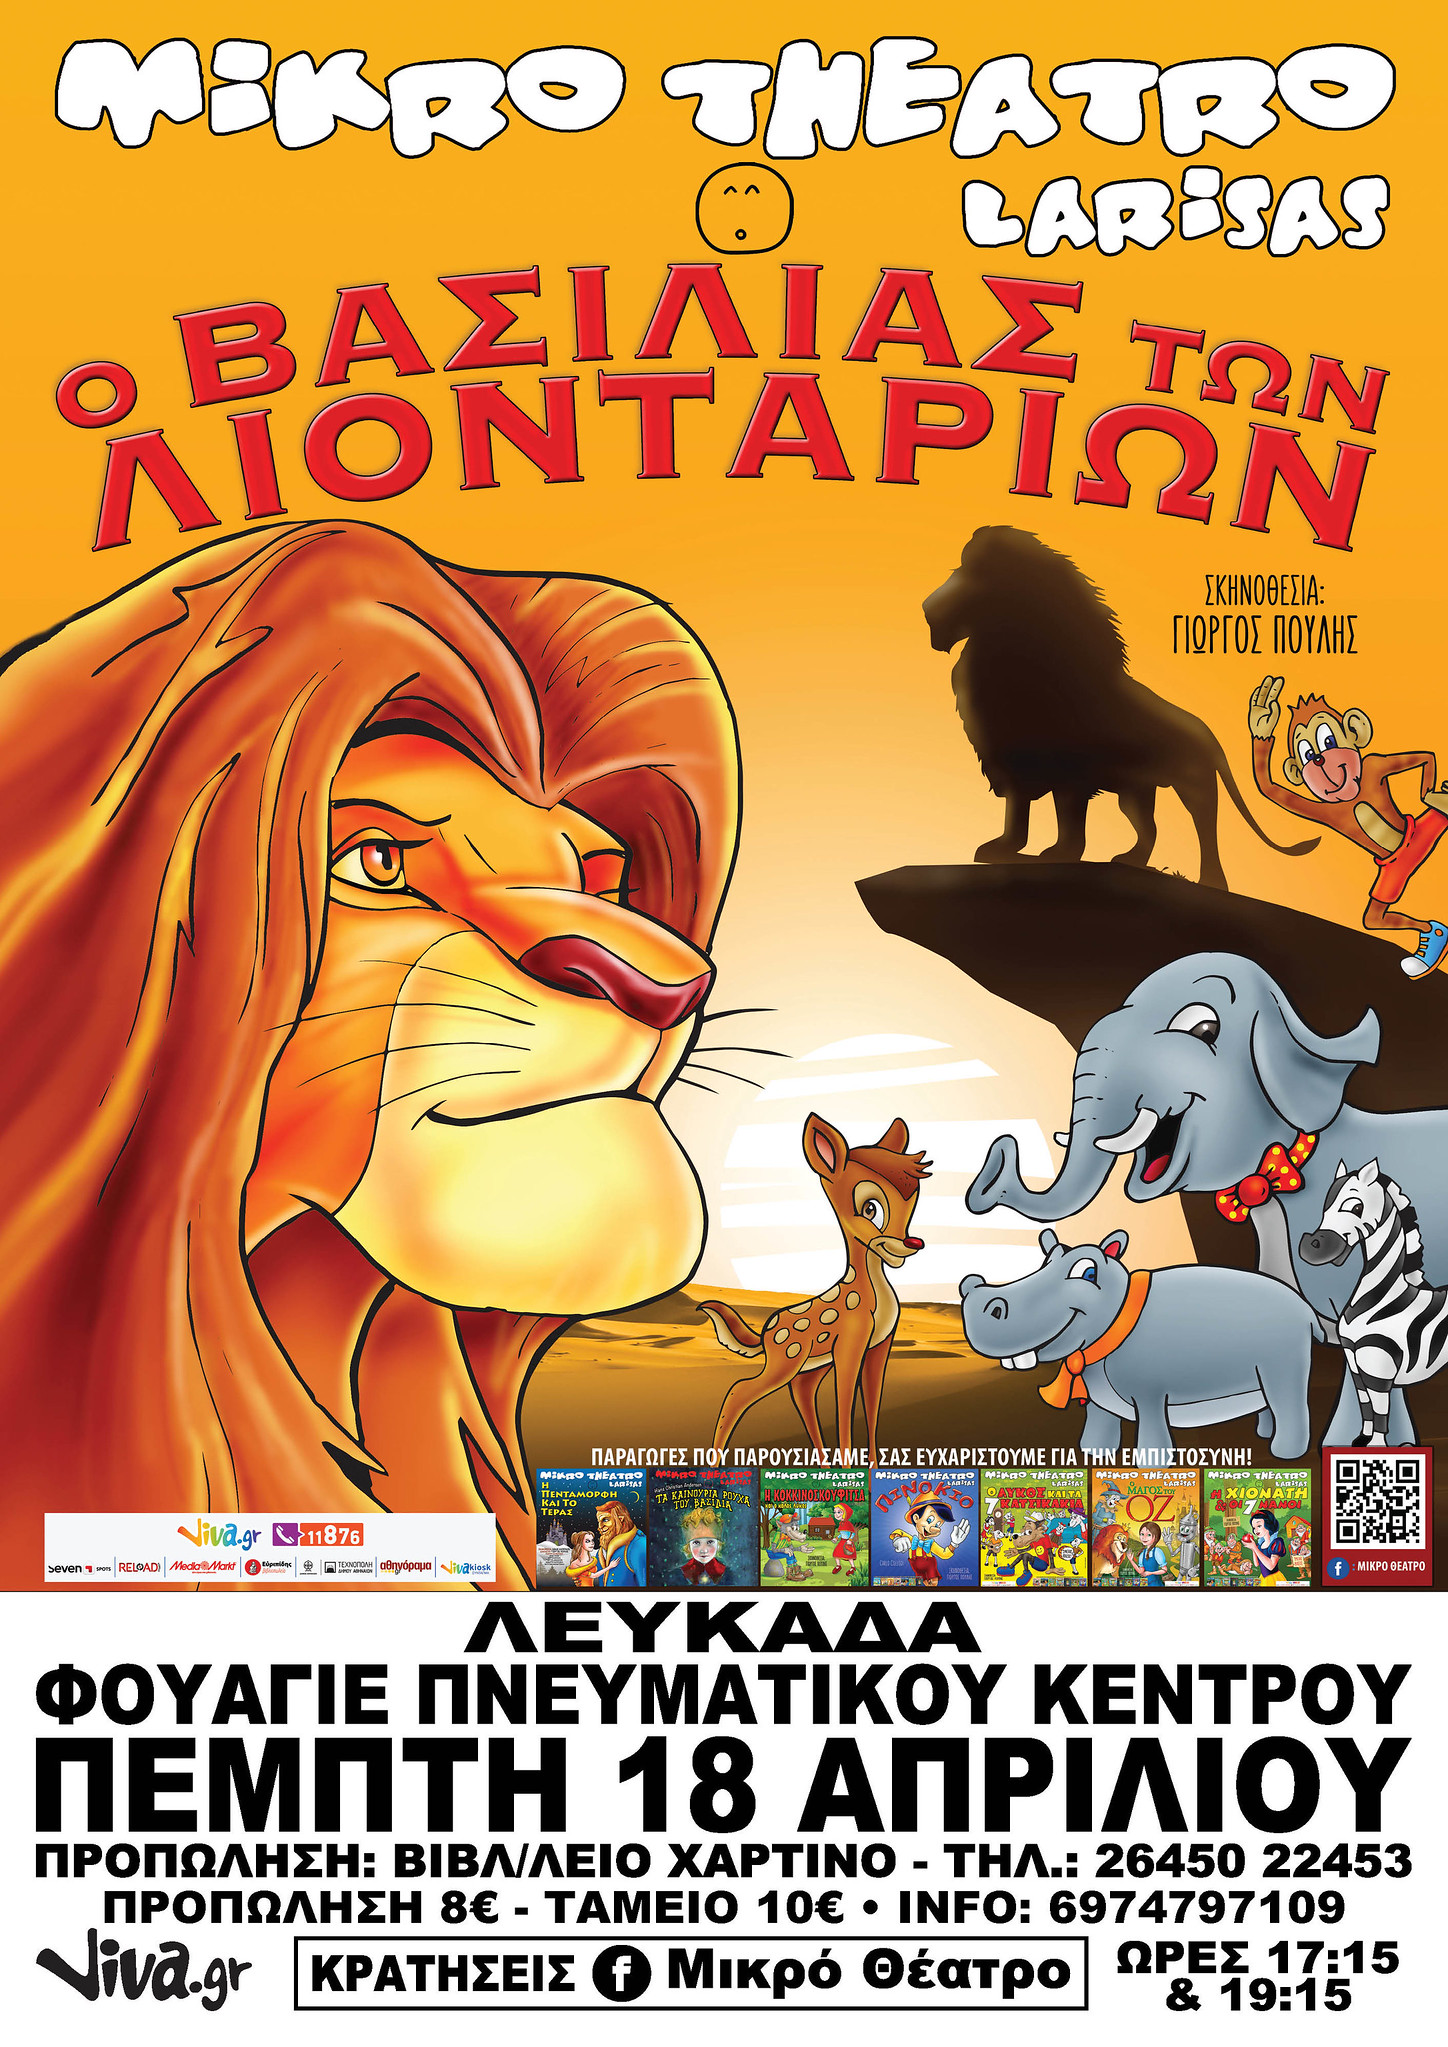 47.8x67.6poster LION_ LEFKADA